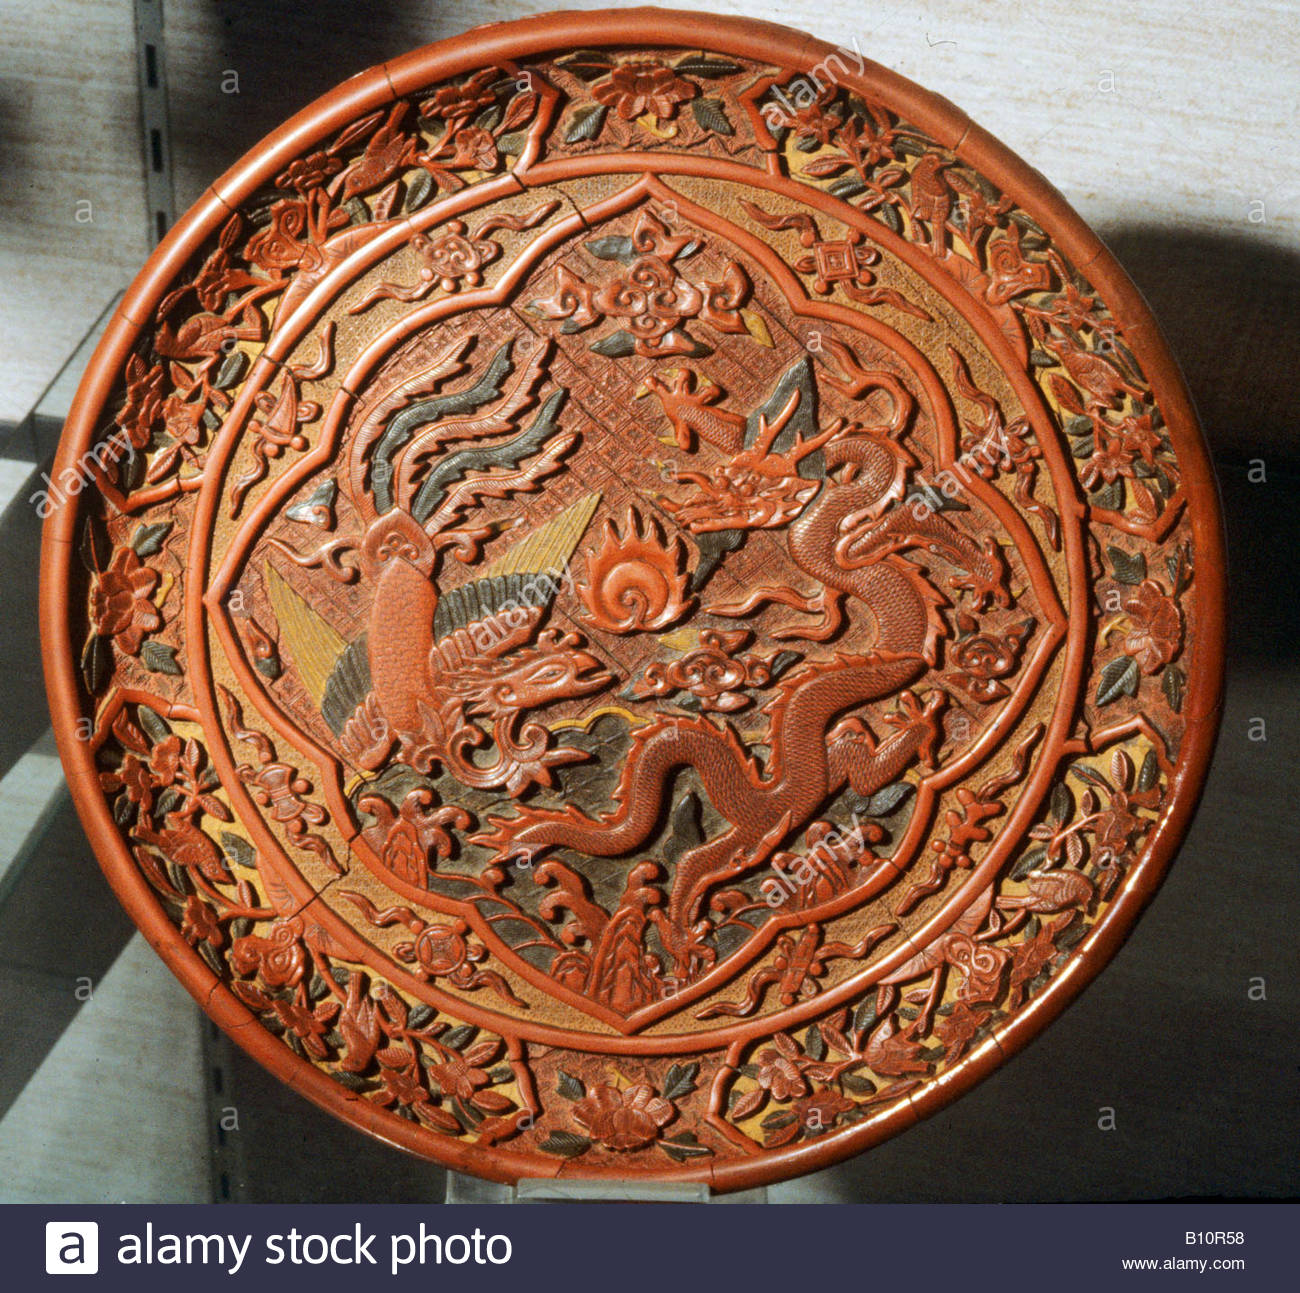 Ming Dynasty laquered dish with dragon and phoenix 15th c China AAAC Ltd Stock Photo